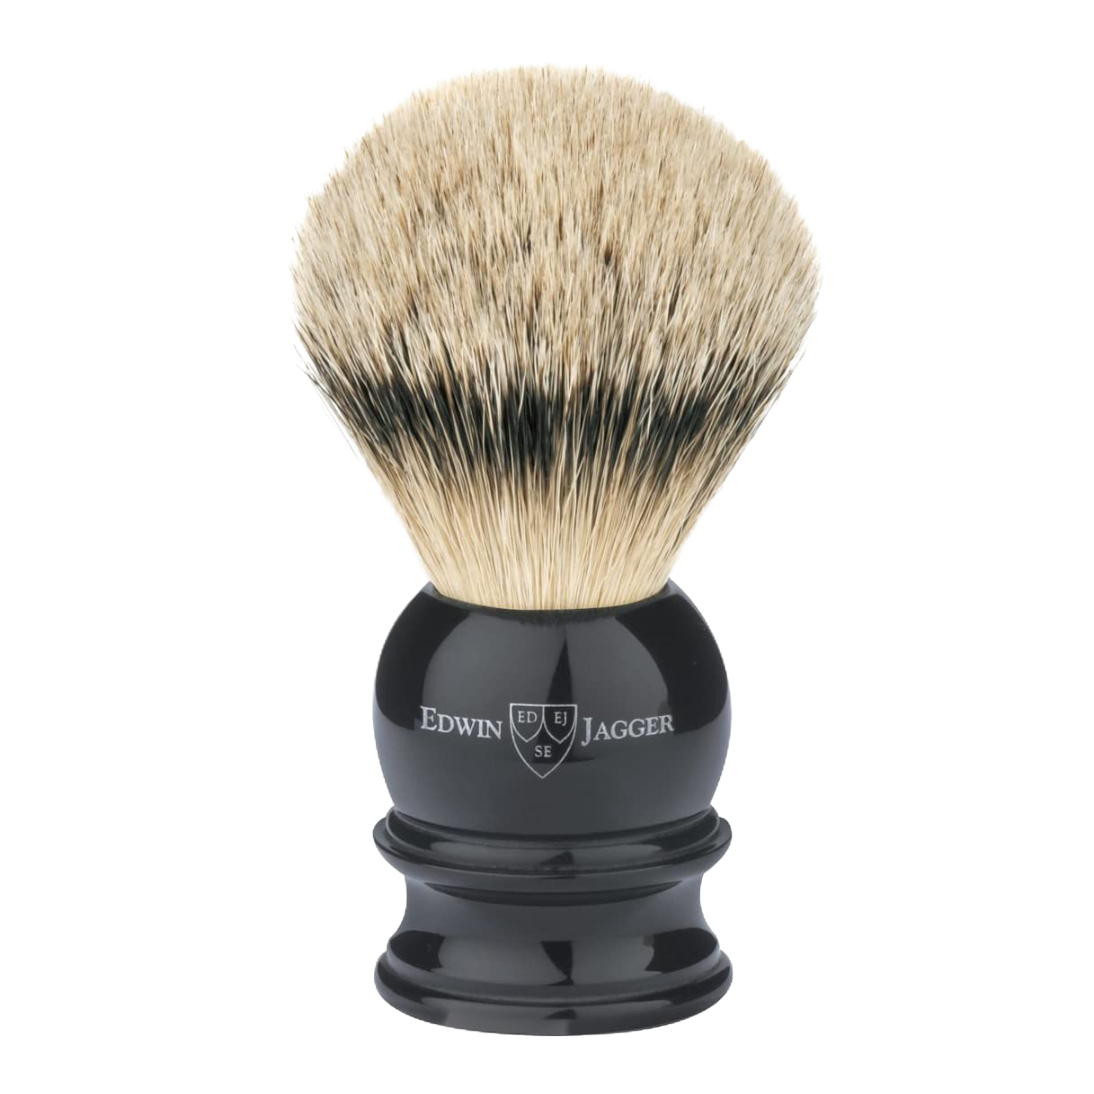 Edwin Jagger 1ej466 - Silver Tip Badger Shaving Brush